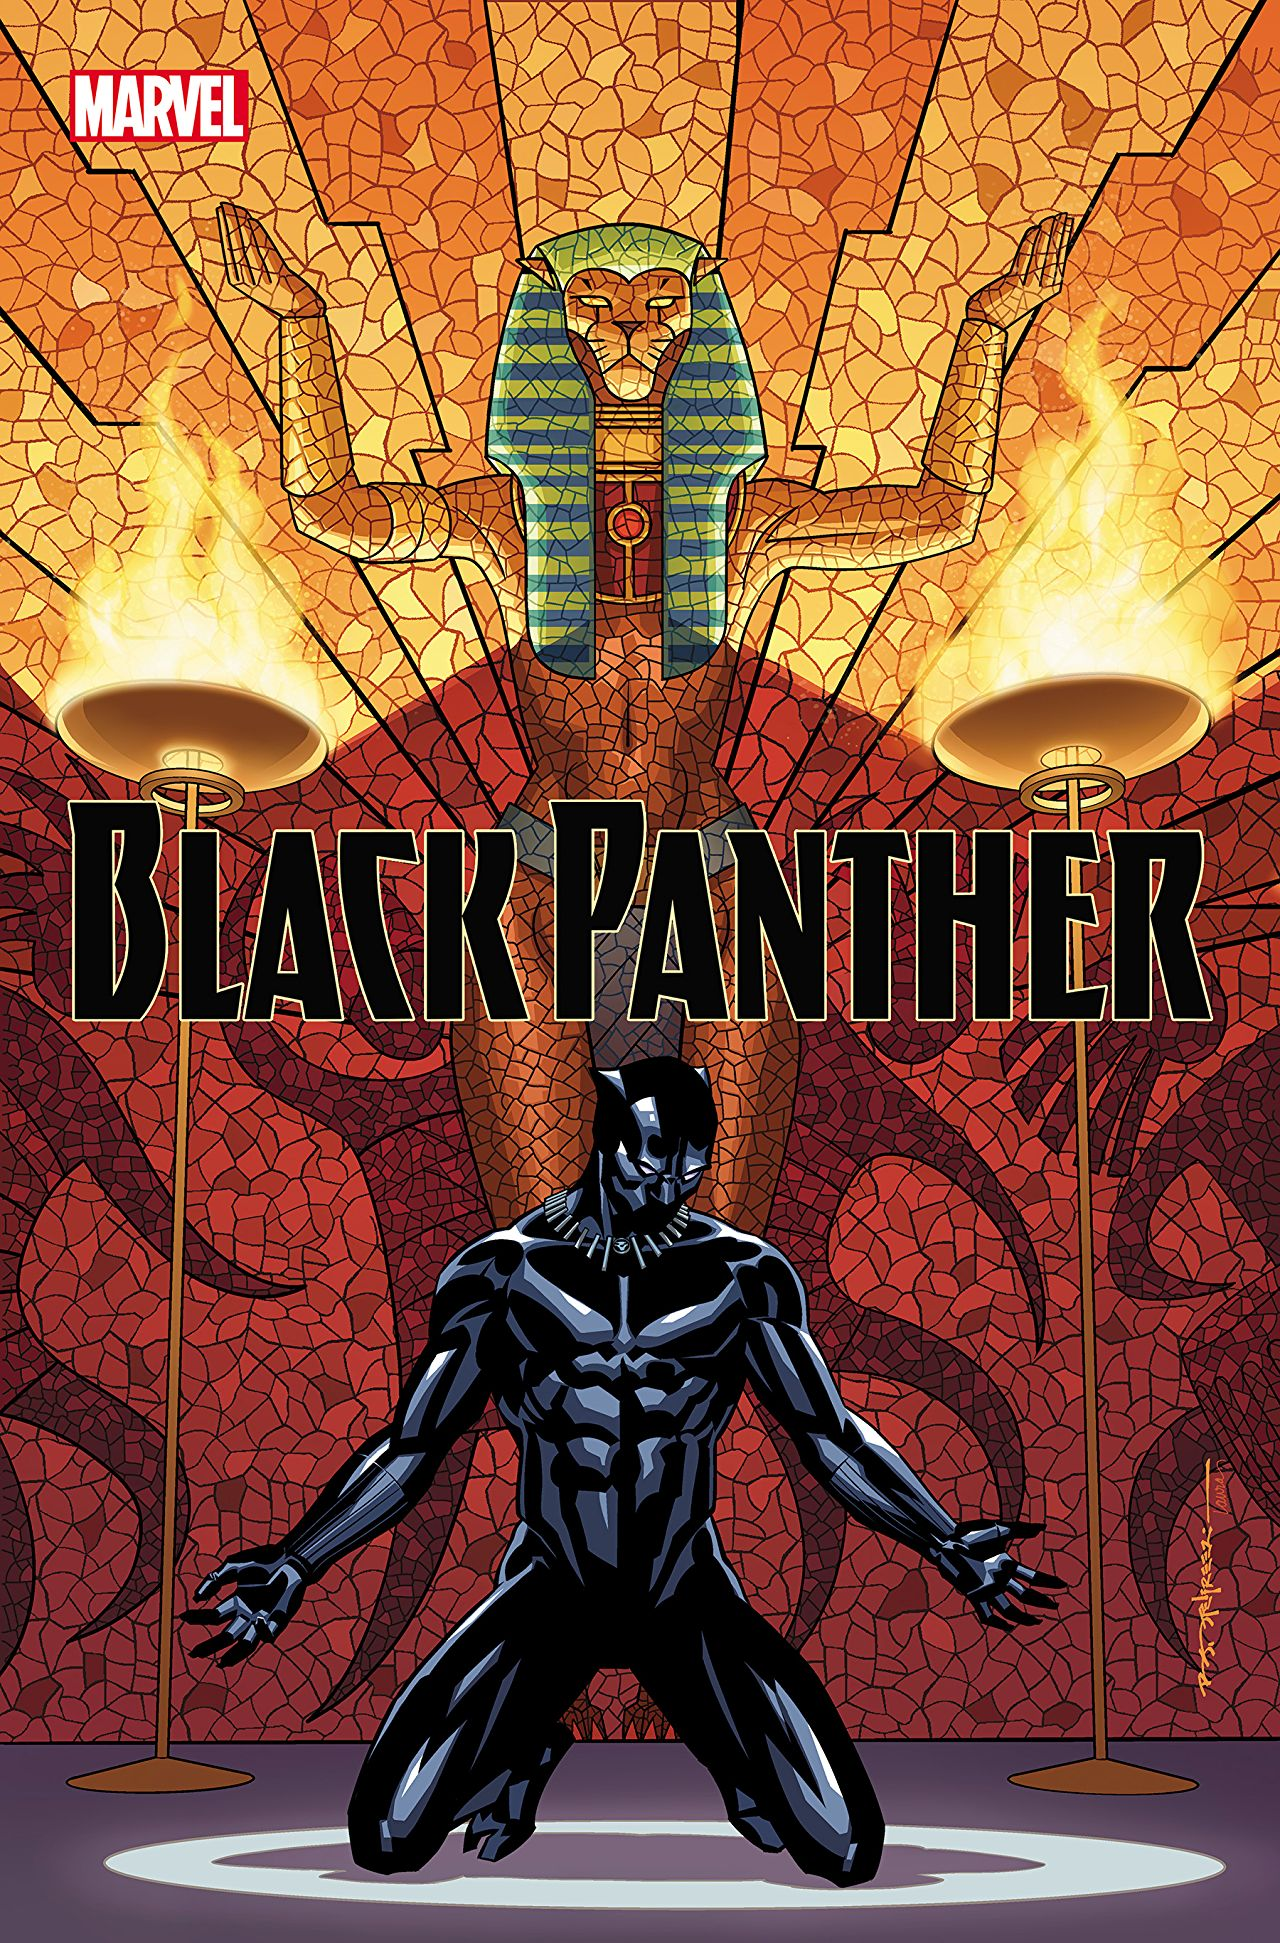 Black Panther Vol. 4: Avengers of the New World Part 1 review: a deep dive into the mythology behind the King of Wakanda